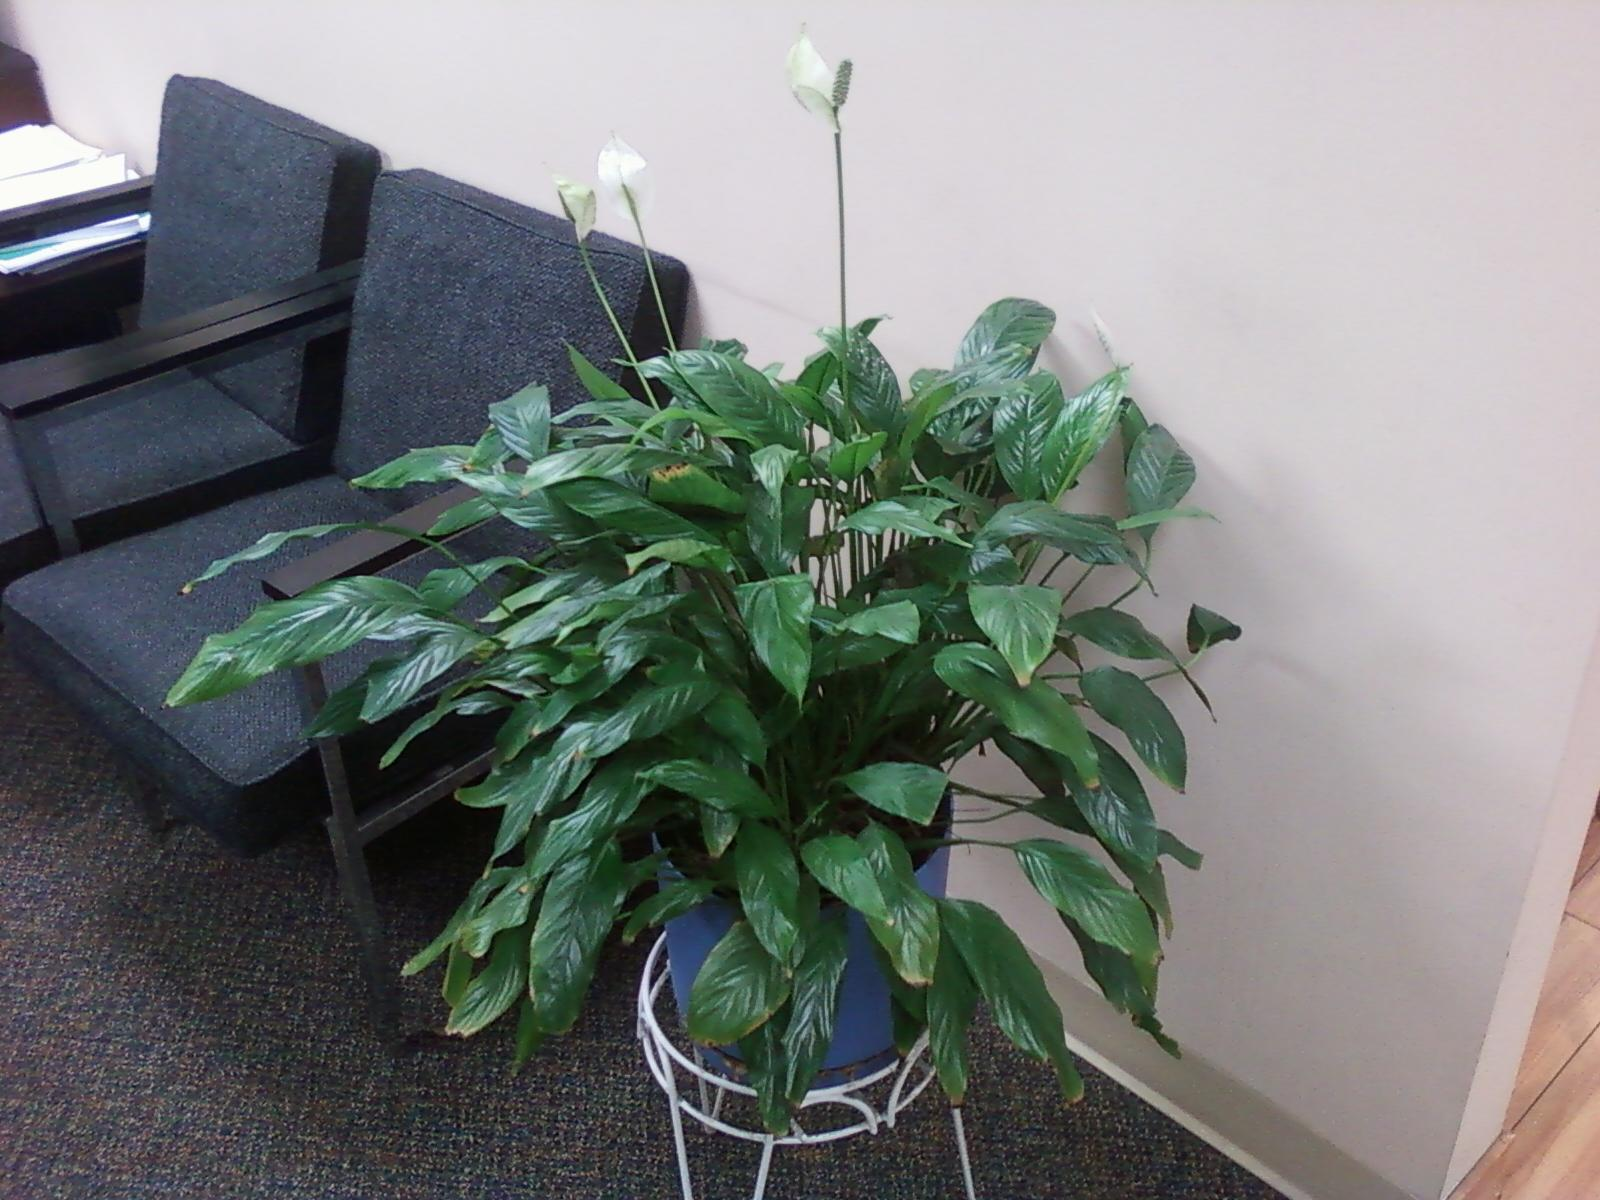 Peace lily blooms turning brown blogdeinformatica peace lily blooms turning brown izmirmasajfo Choice Image